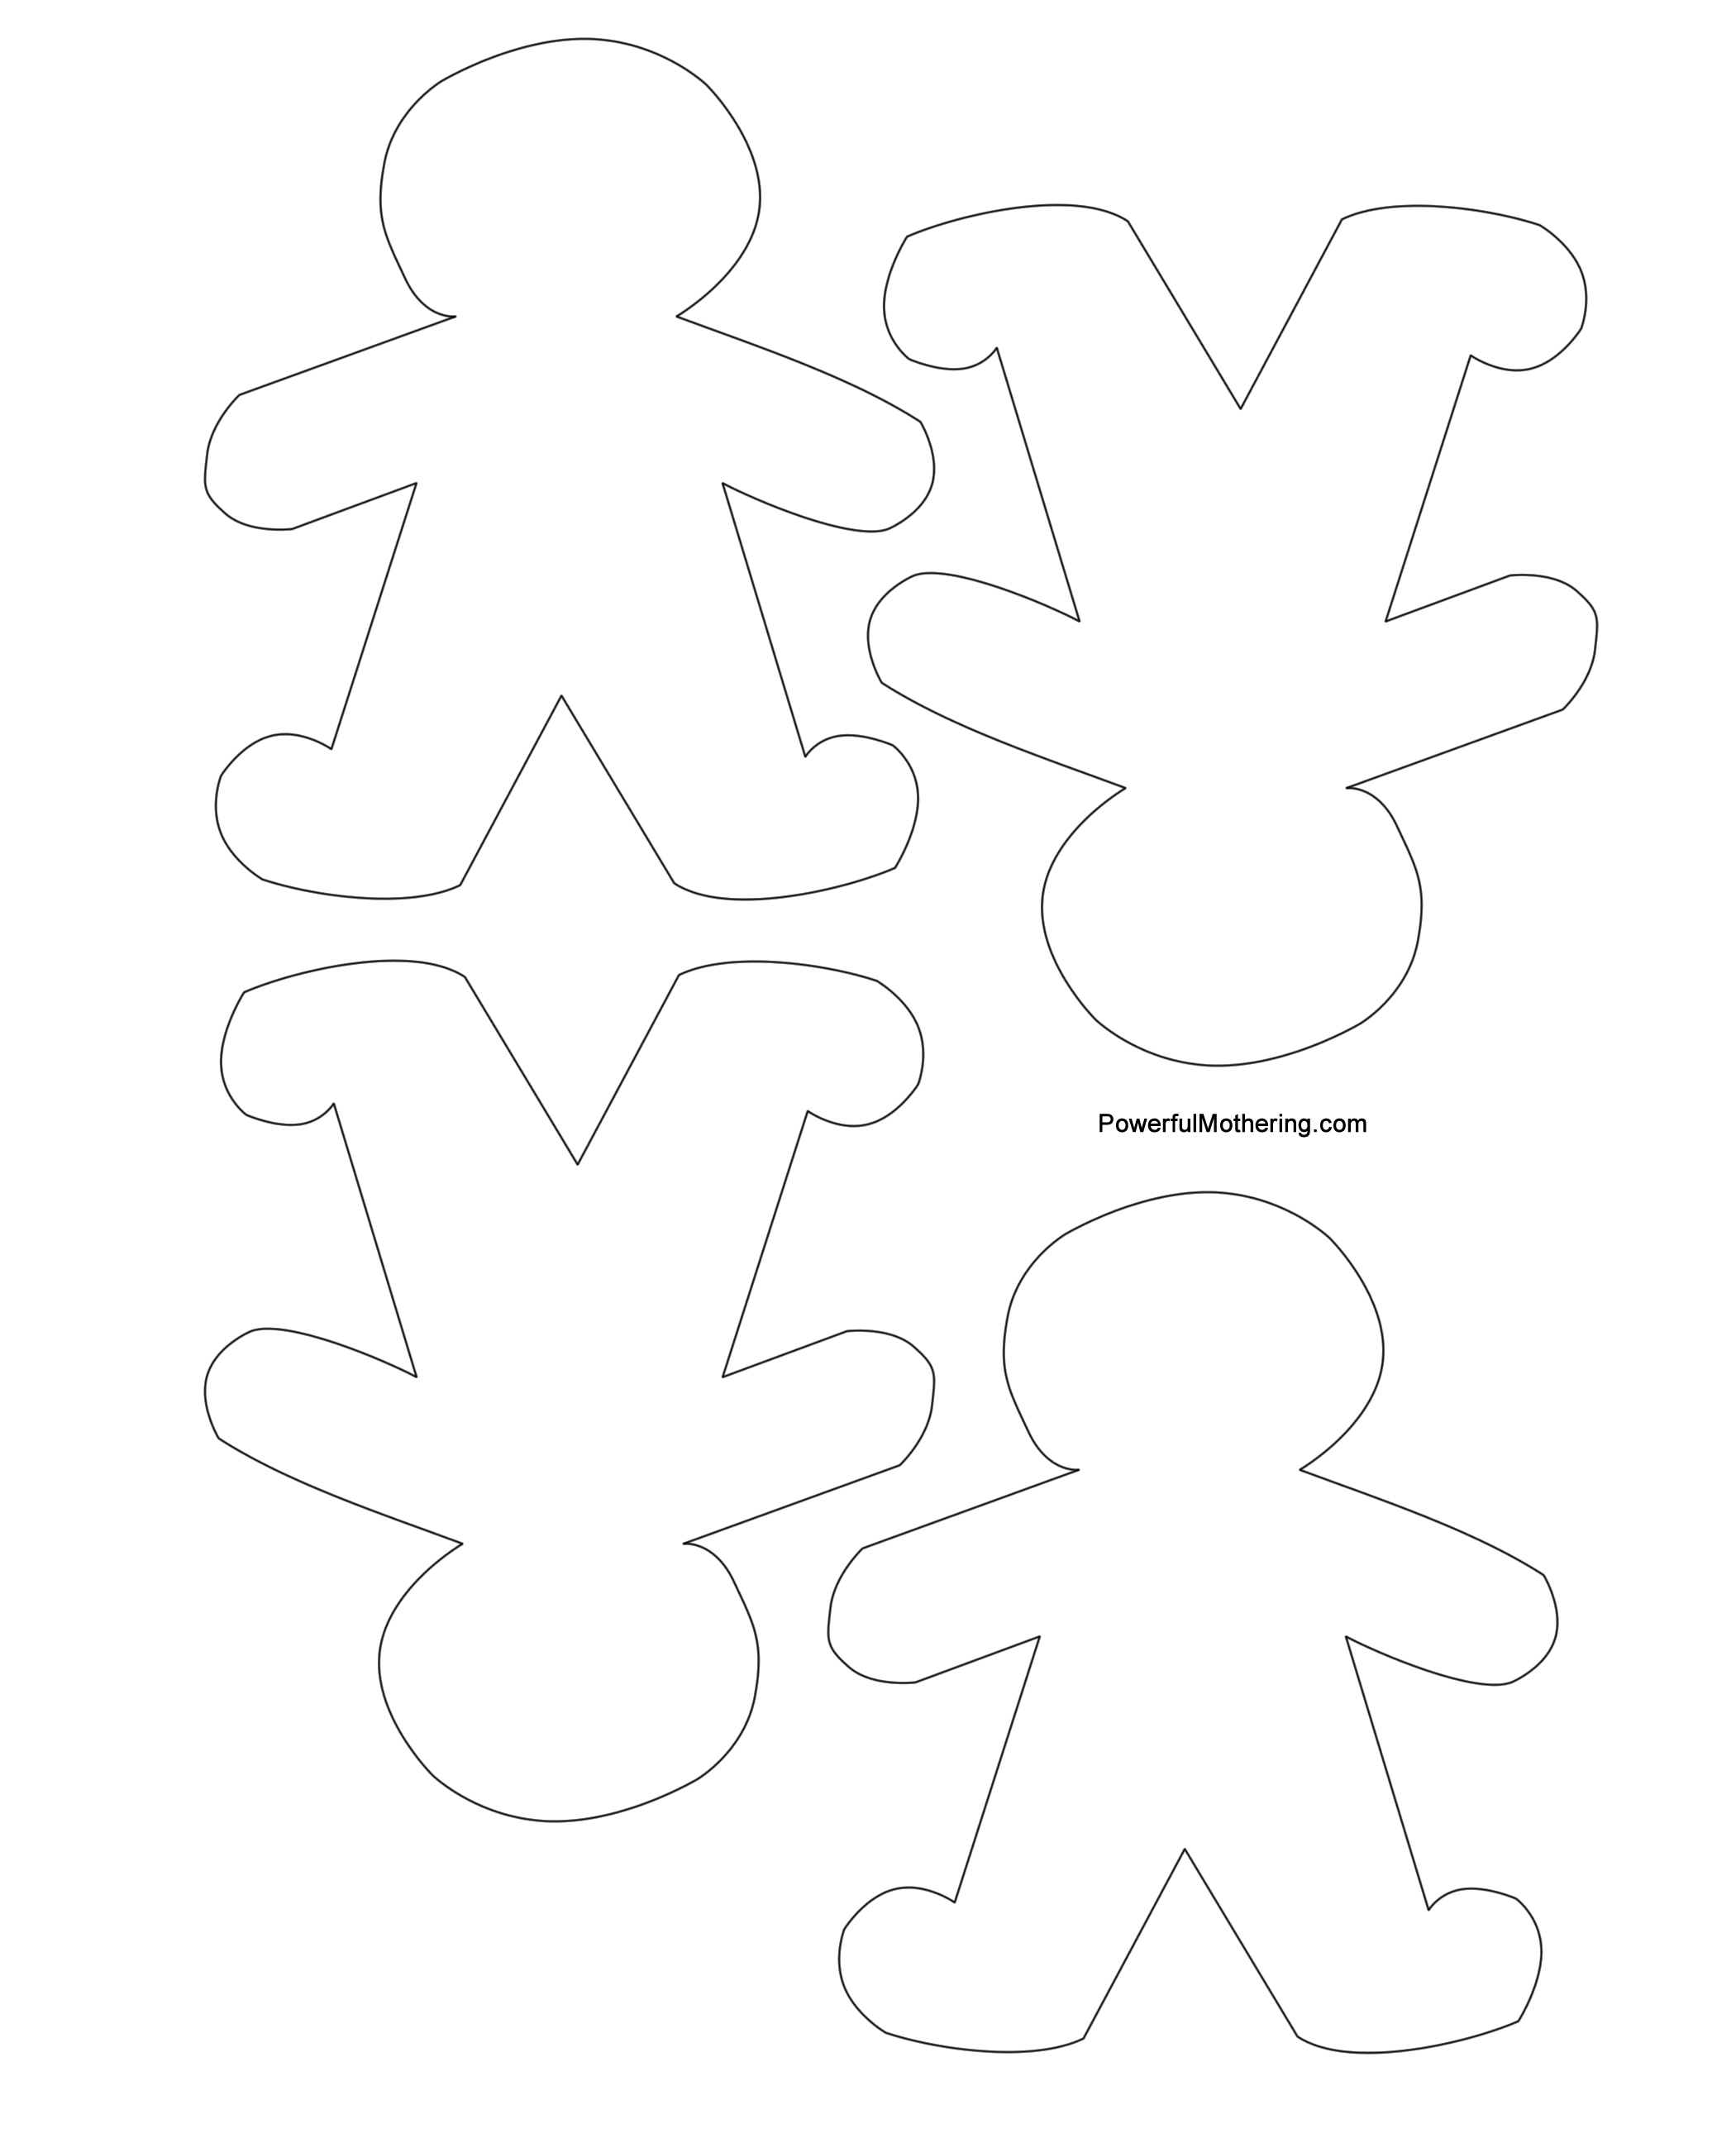 photograph regarding Printable Christmas Ornament Templates named Gingerbread Males, Xmas Tree and Star Printables